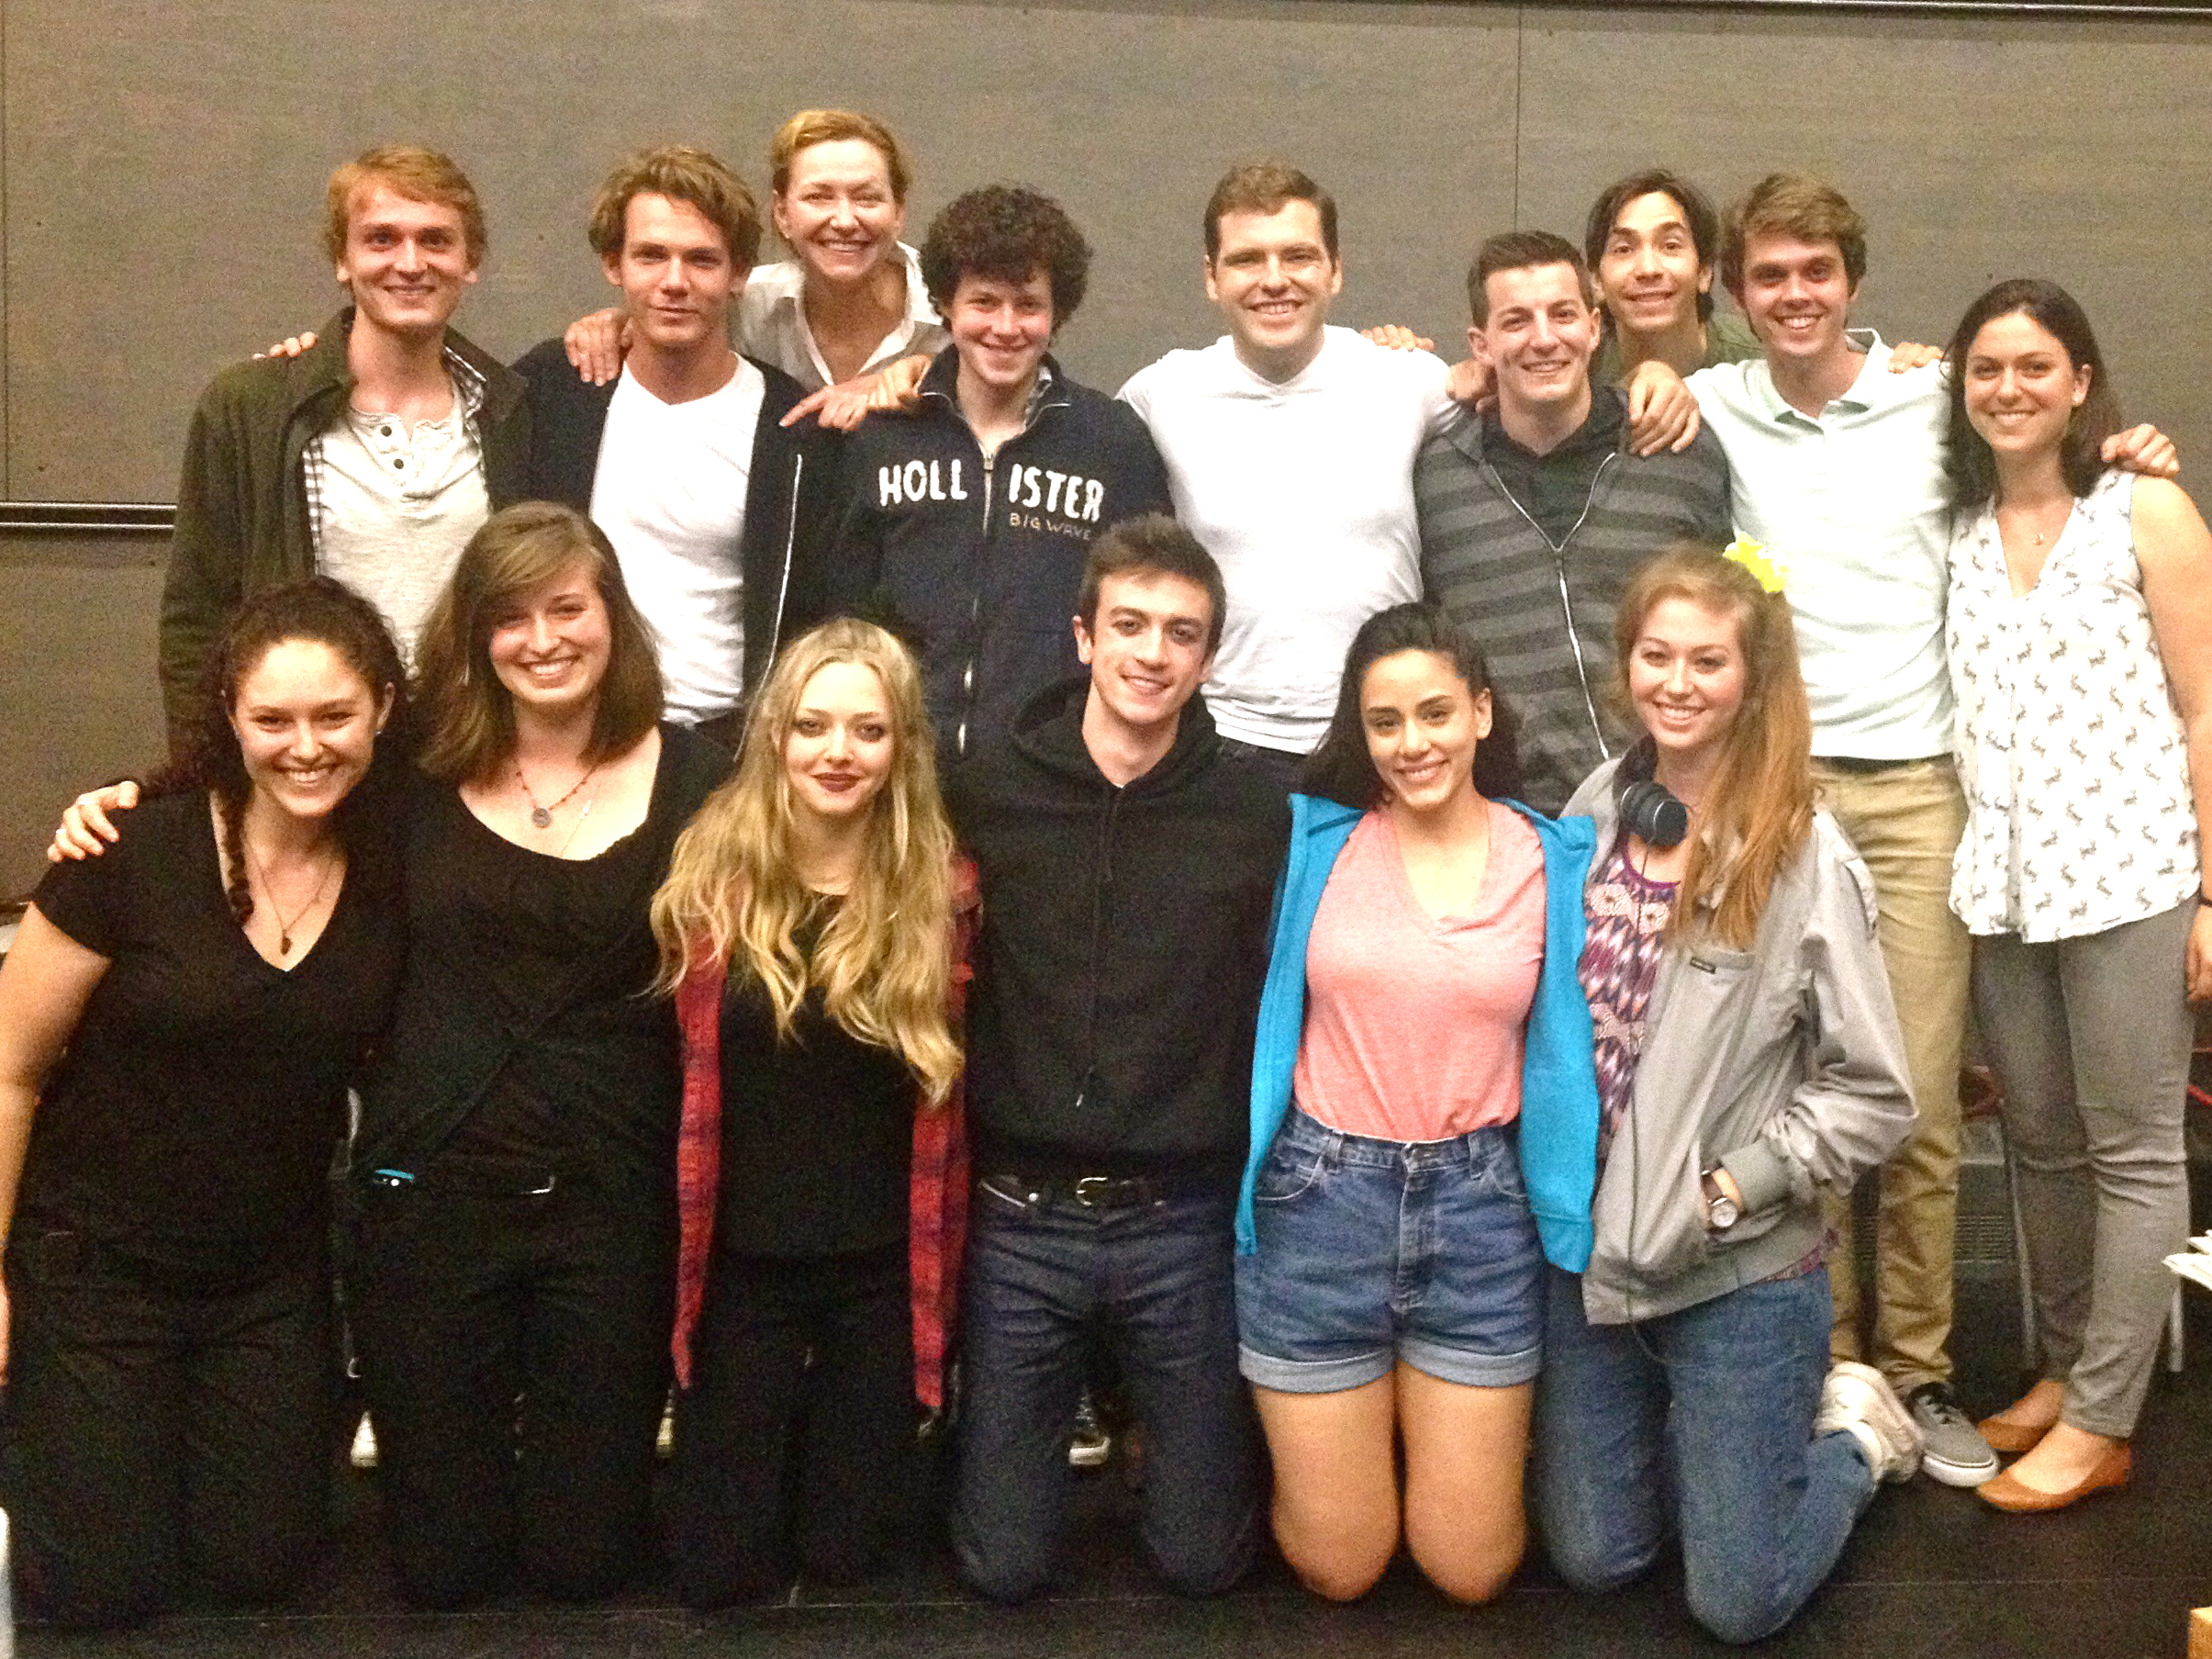 The Cast & Crew of 18 TO PARTY